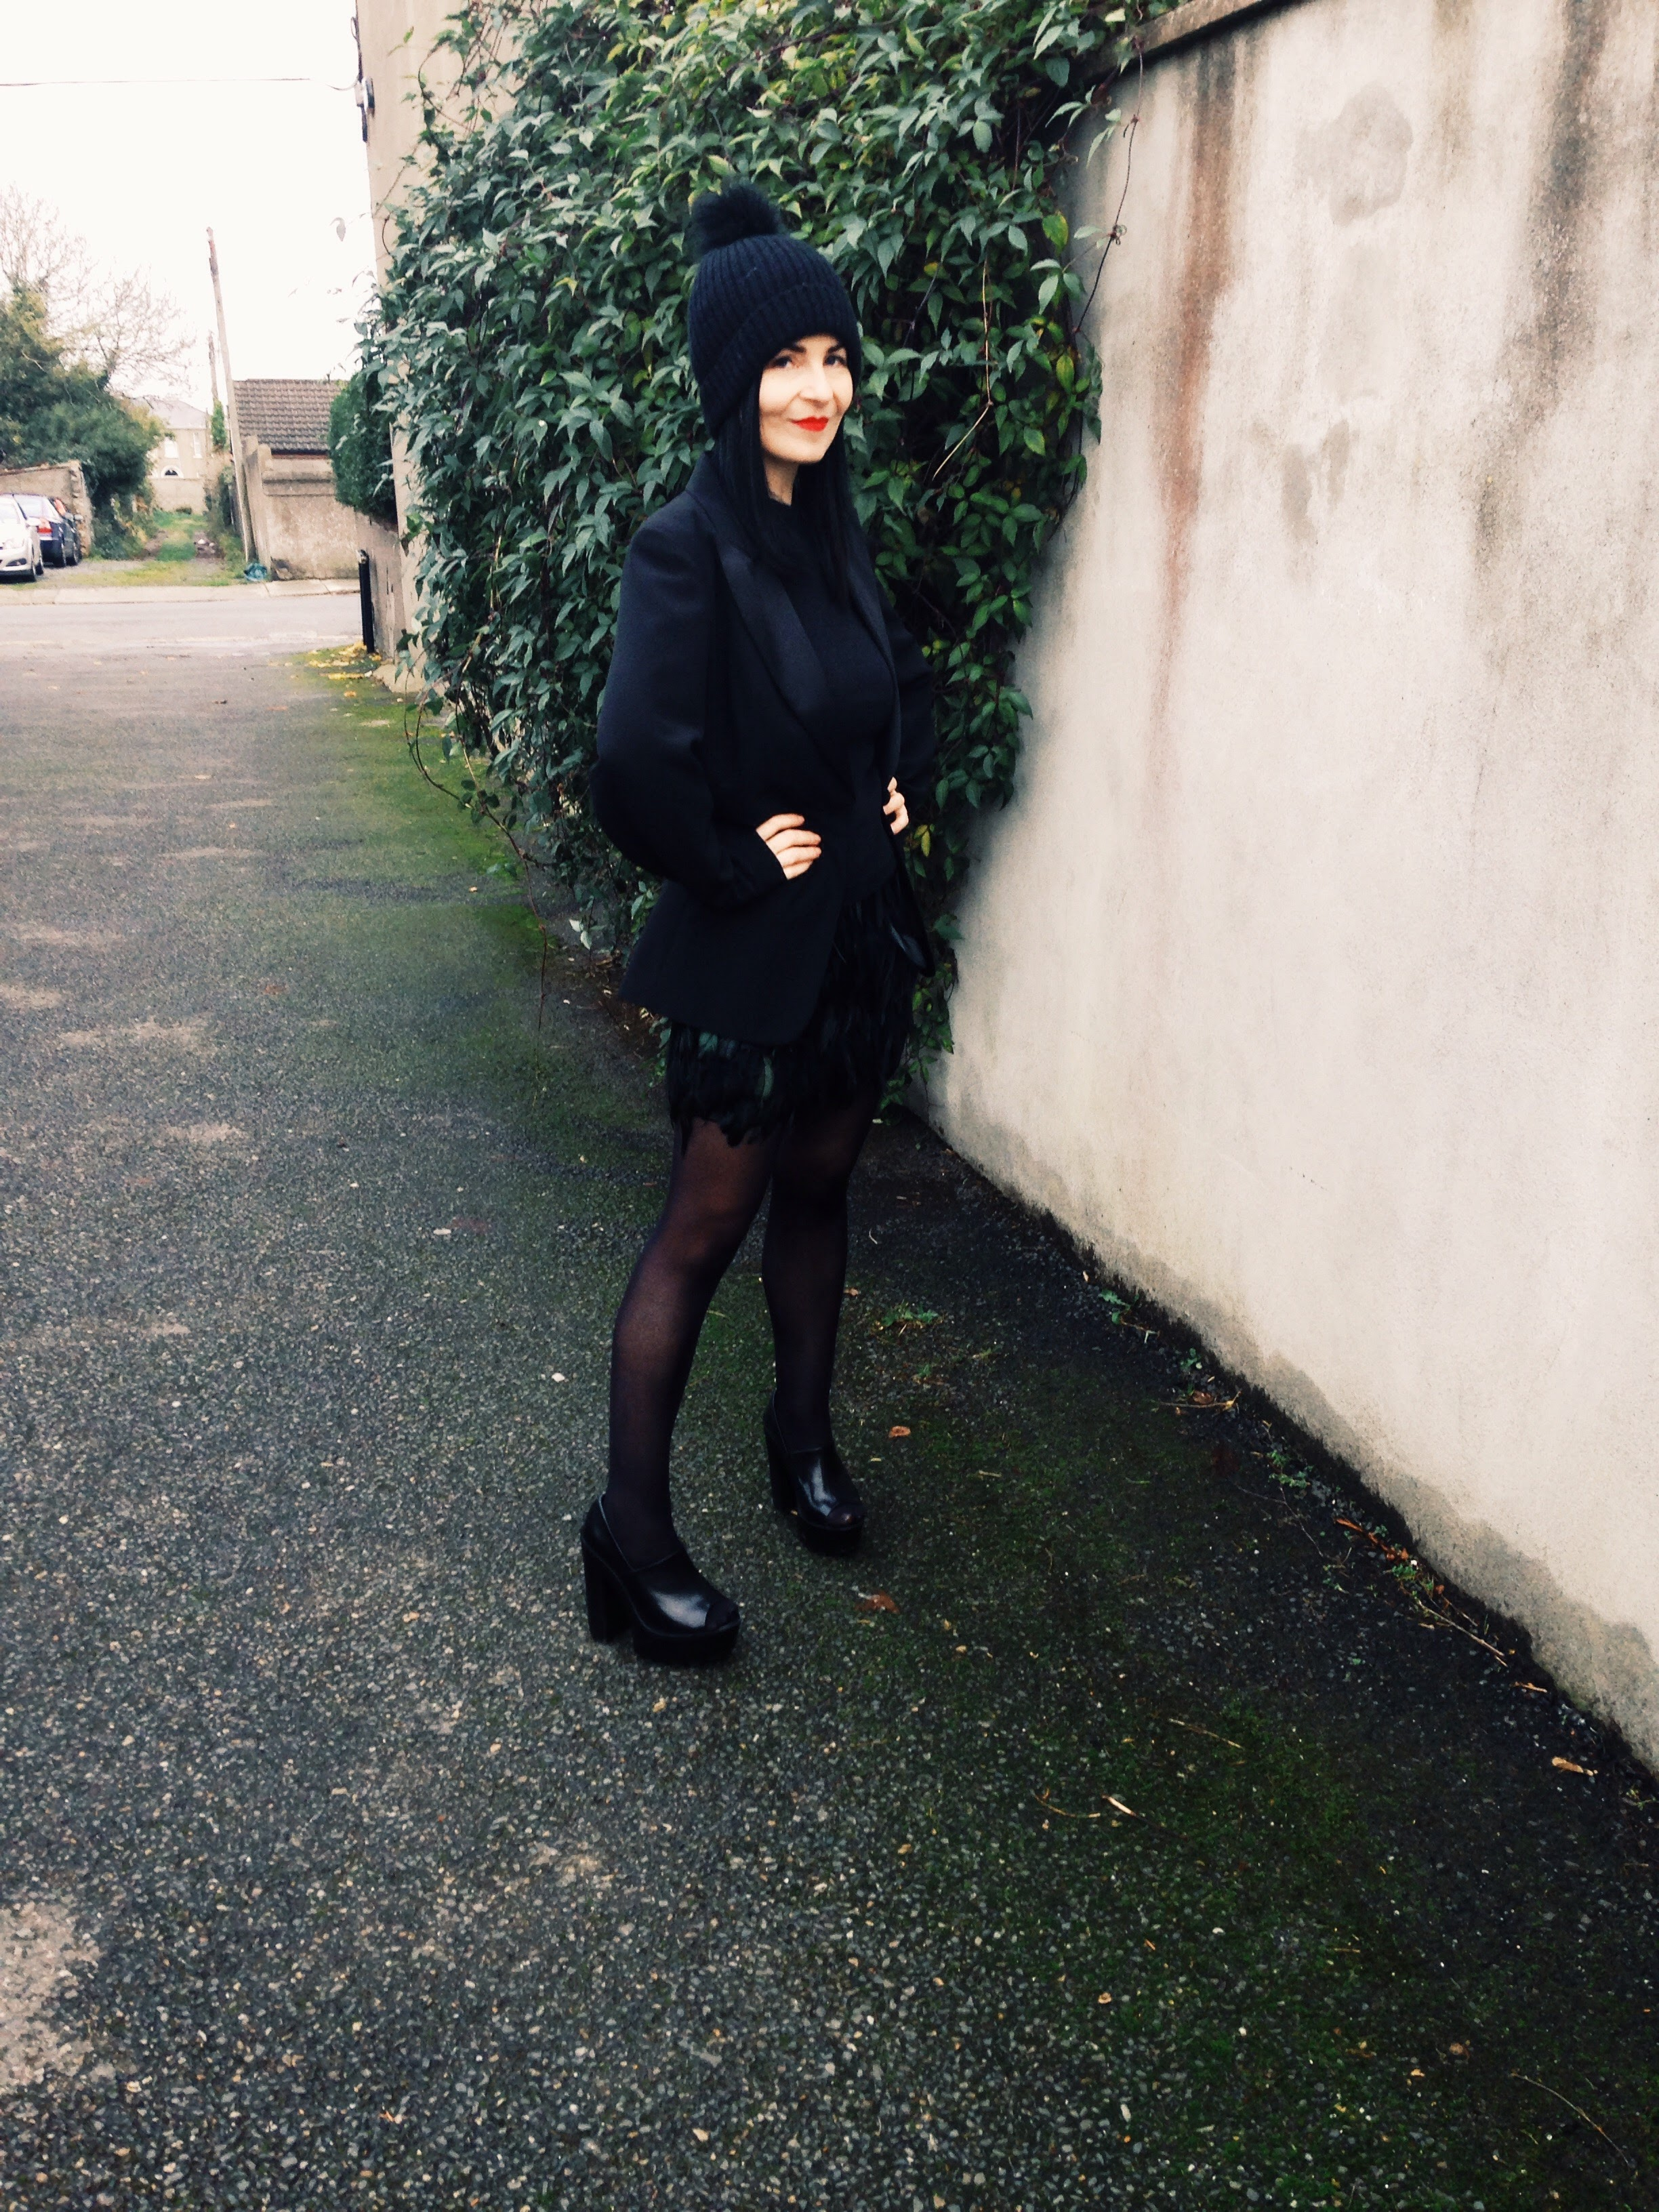 This street look is one of my favourites and is glammed up by a vintage 90s feathered mini skirt from Lipsy.